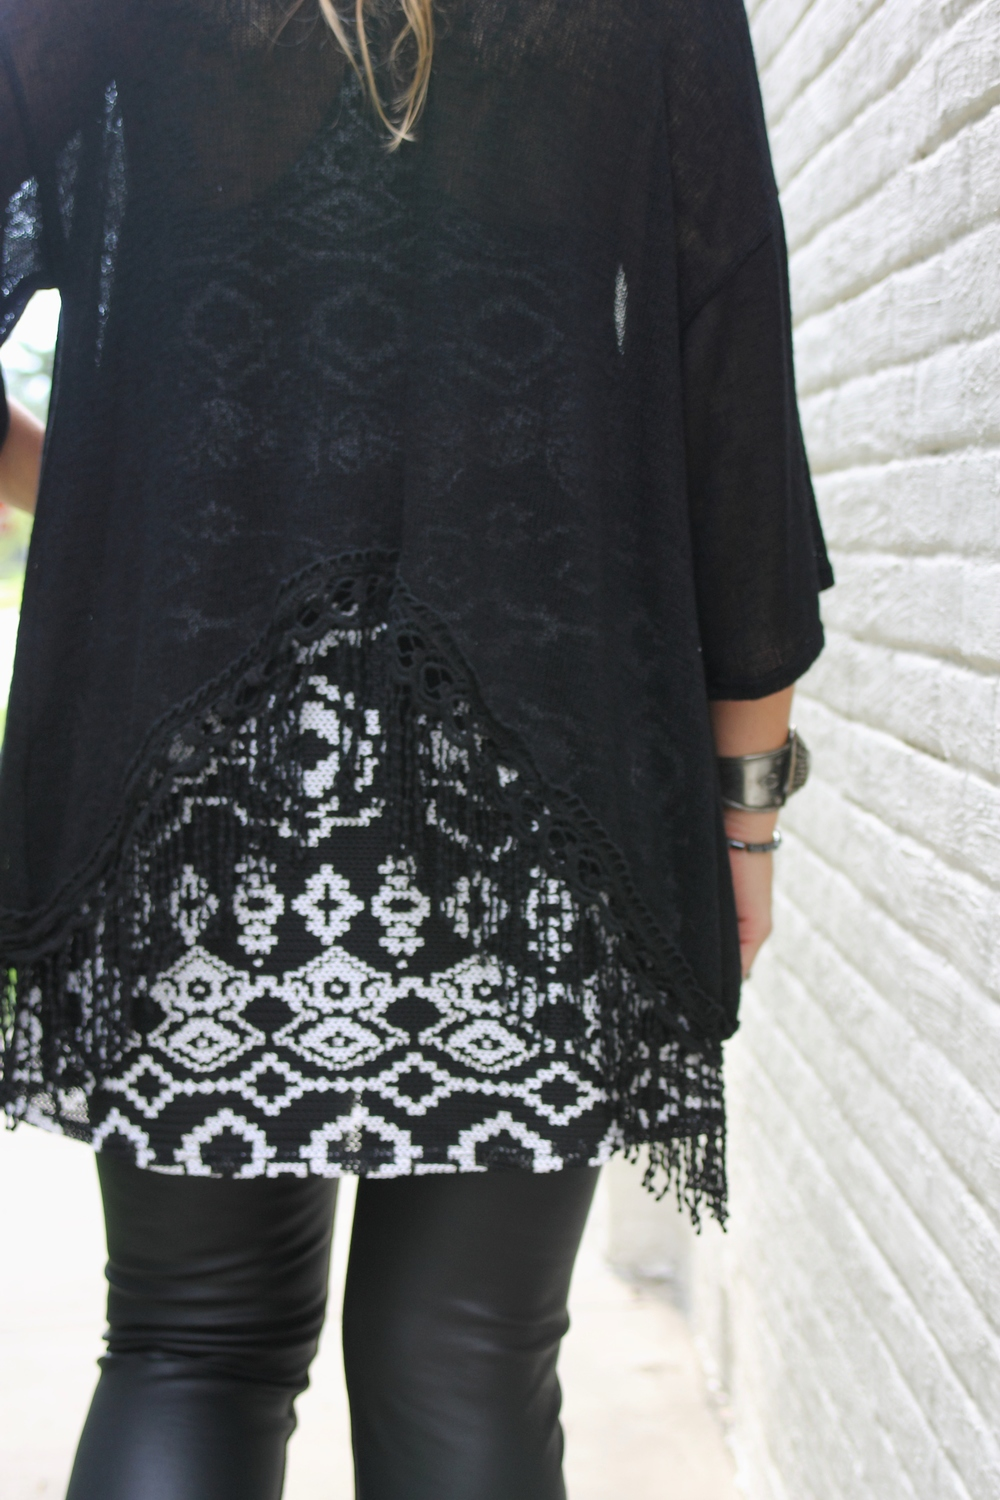 http://www.themintjulepboutique.com/shop/The-Lilly-Cardigan-Black.html